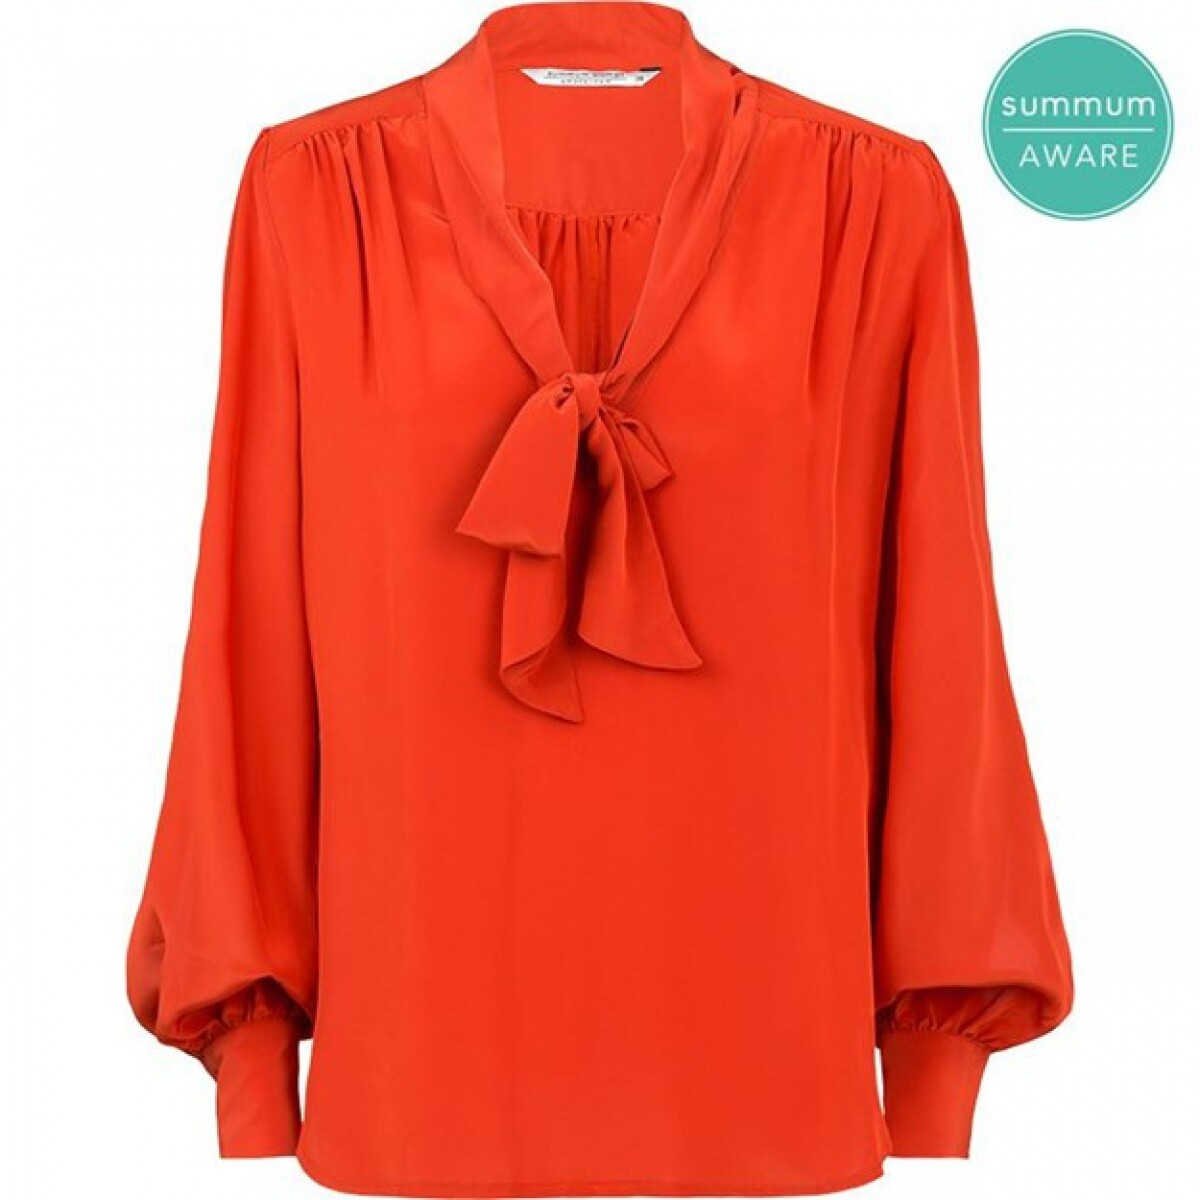 Summum blouse rood